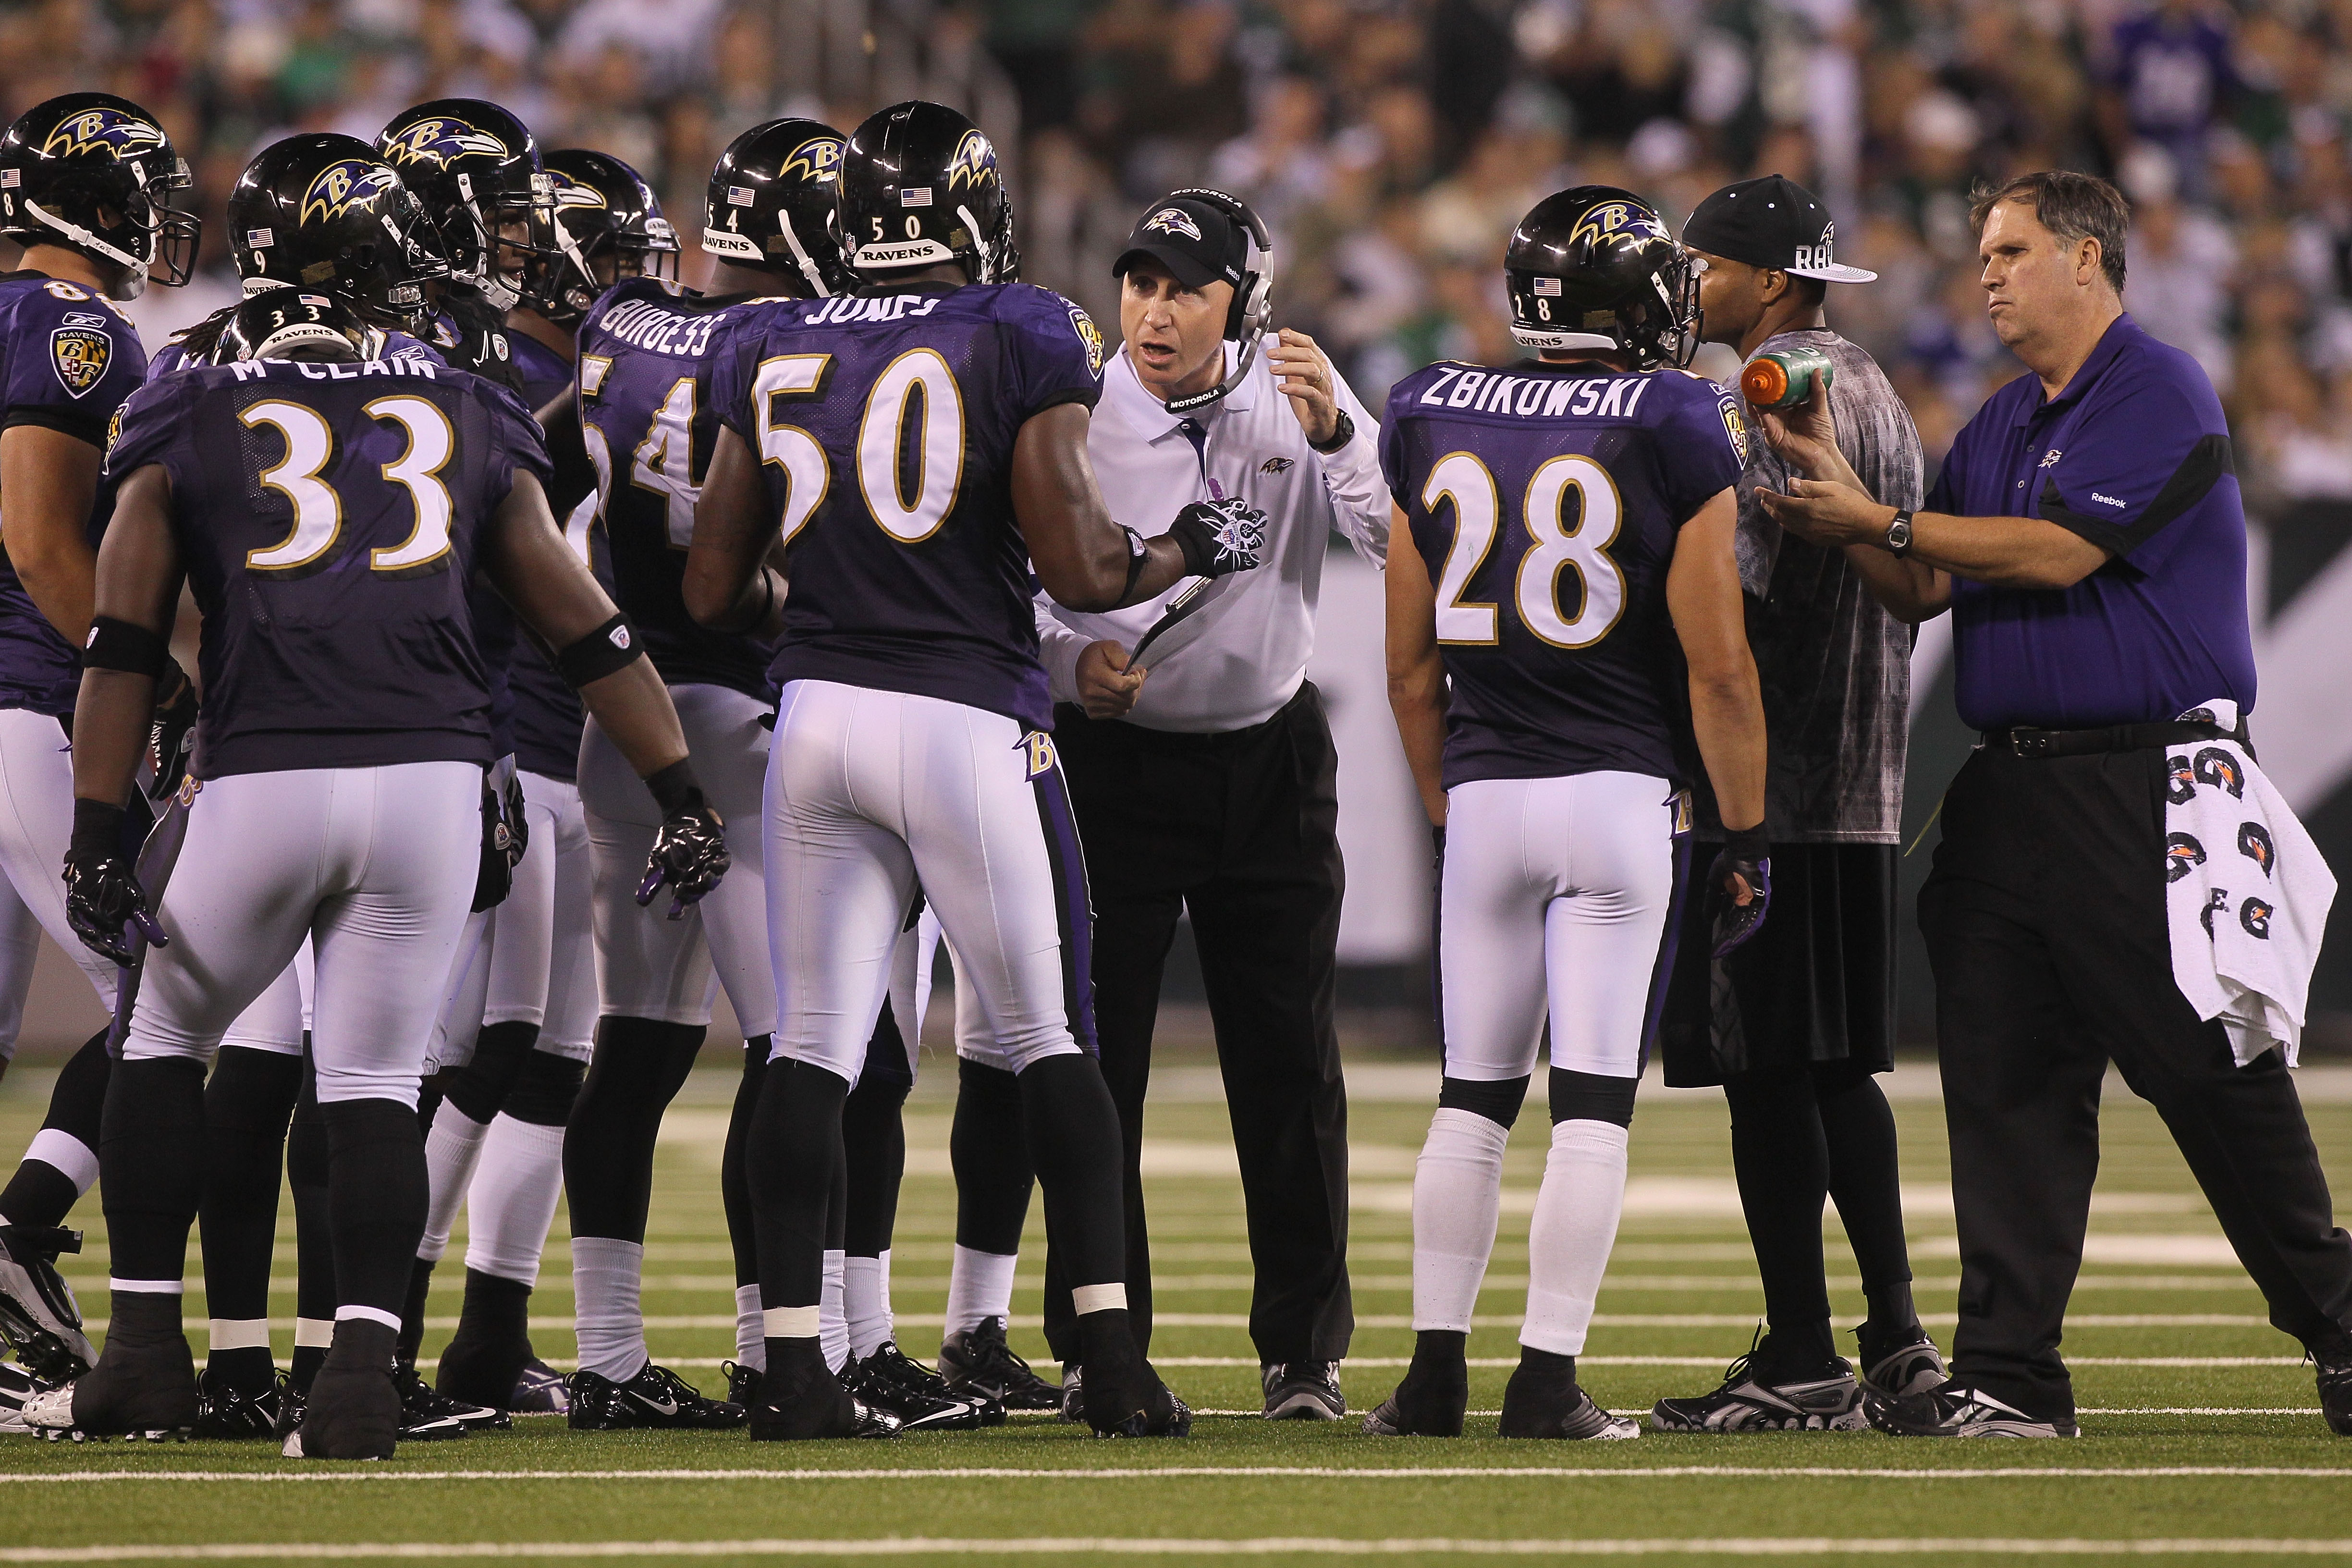 EAST RUTHERFORD, NJ - SEPTEMBER 13:  The Baltimore Ravens stand on the field against the New York Jets during their home opener at the New Meadowlands Stadium on September 13, 2010 in East Rutherford, New Jersey.  (Photo by Jim McIsaac/Getty Images)